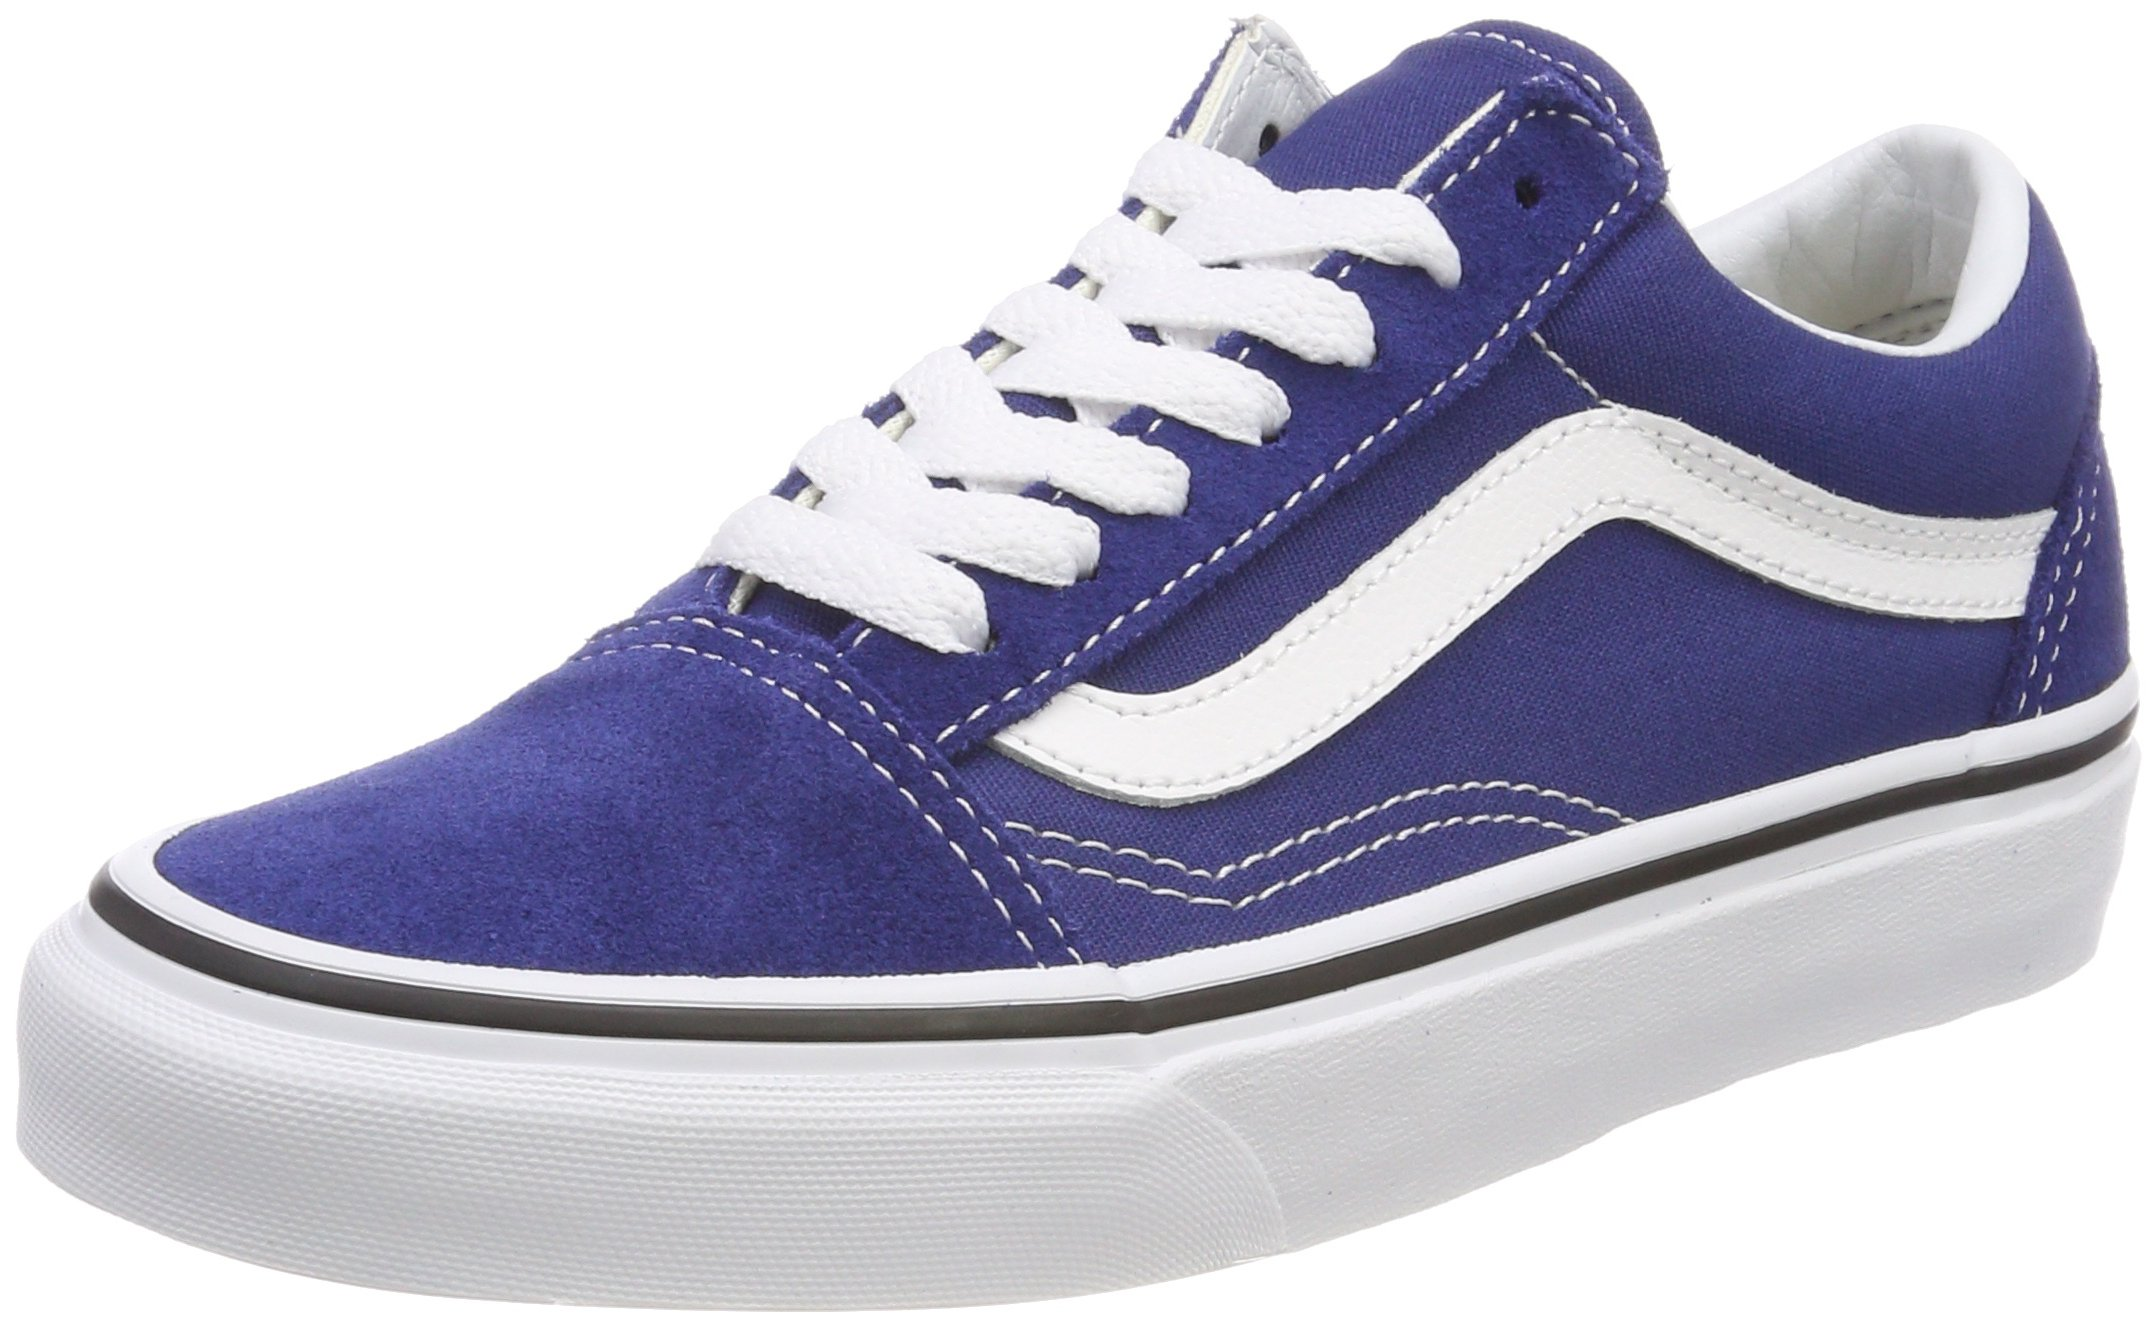 37af06678b Galleon - Vans Unisex Adults Old Skool Classic Suede Canvas Sneakers ...